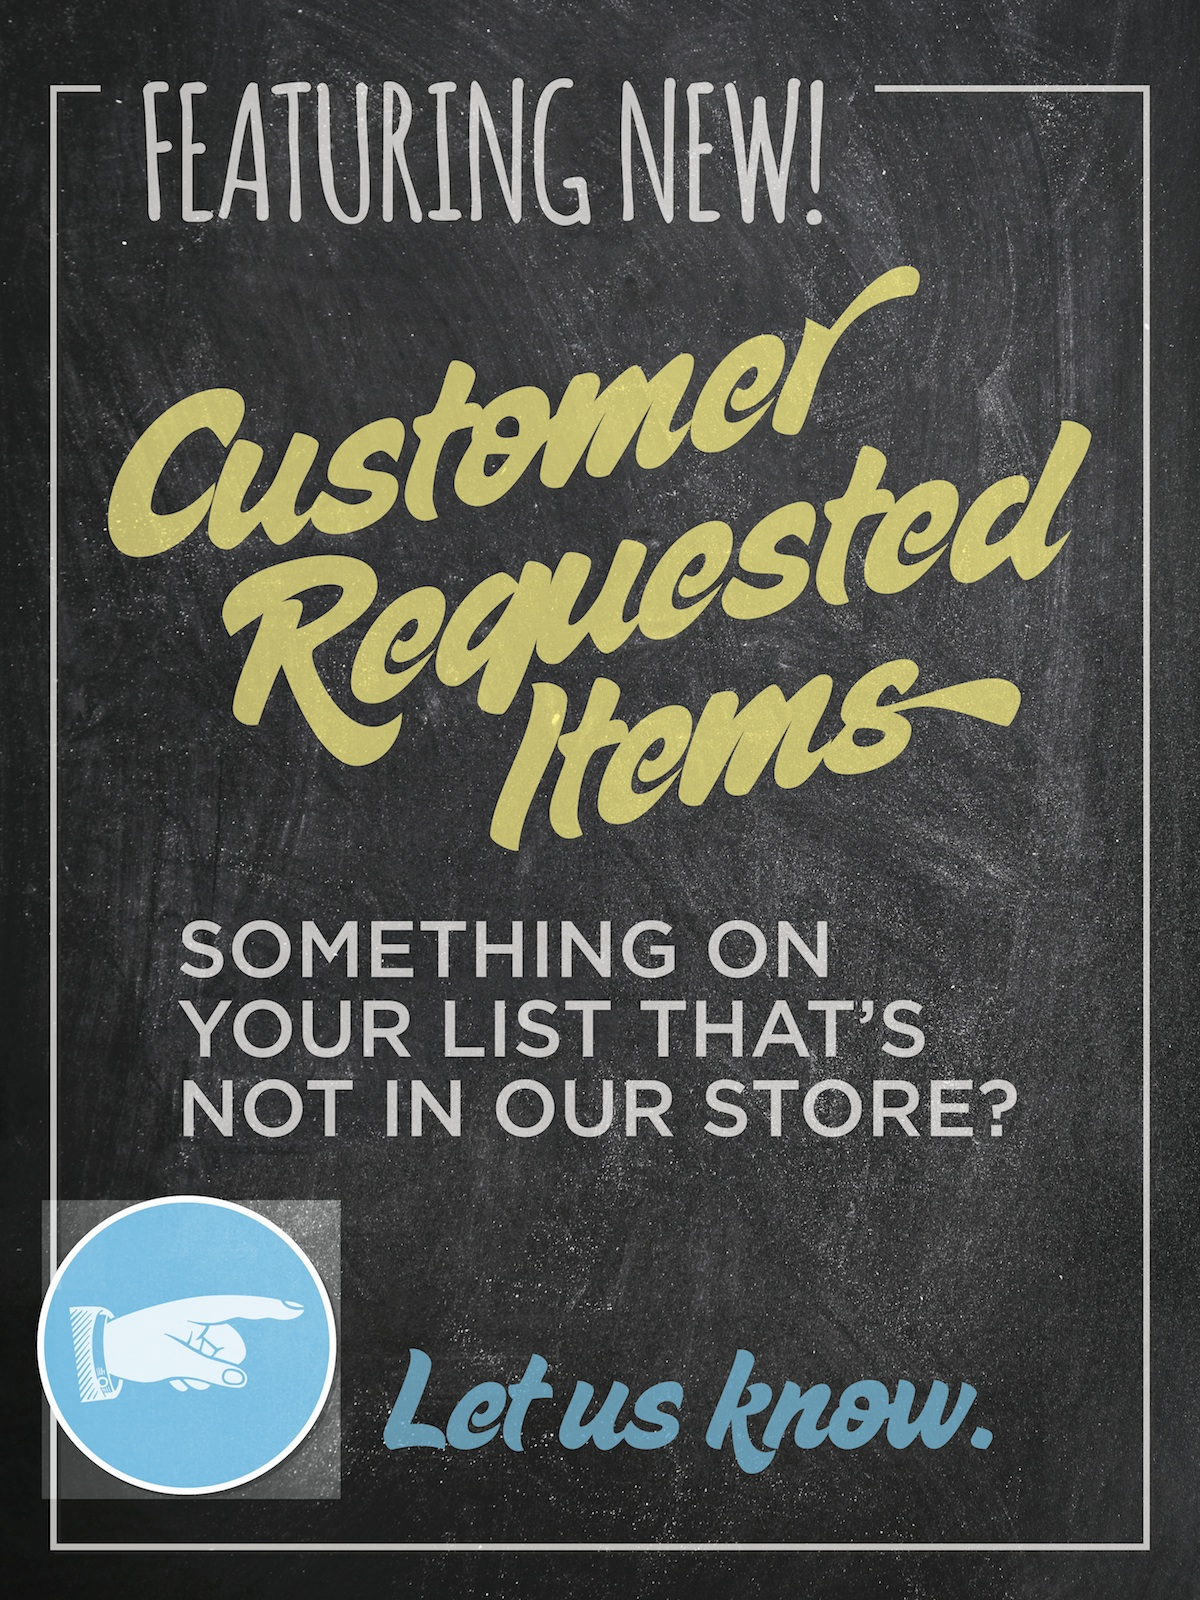 Rays Food Place Customer Requests Request We Want To Satisfy And Delight Our Customers Every Single One At Program Is Designed Do Just That